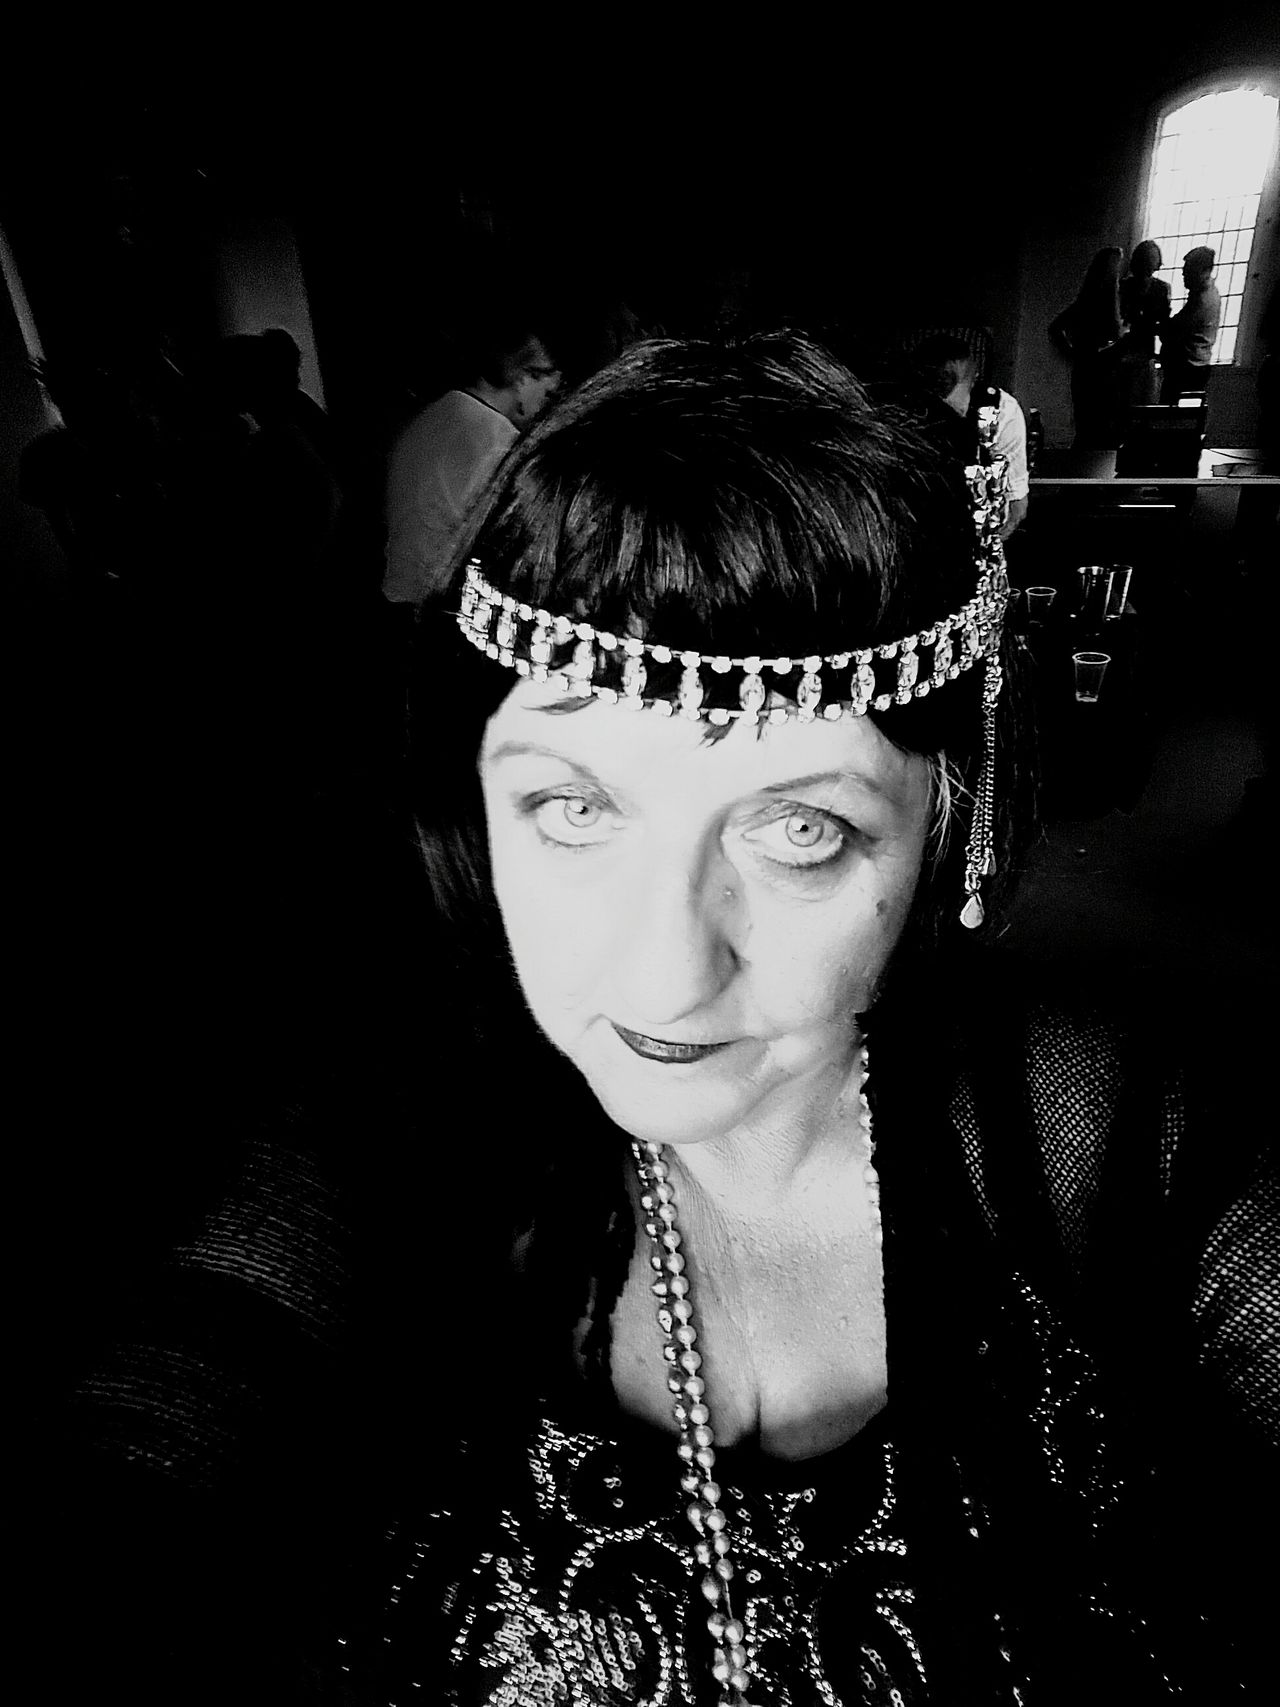 In the 20s In The 20s Nostalgic Look 1920s Blackandwhite Photography 20s Woman Flapper 1920